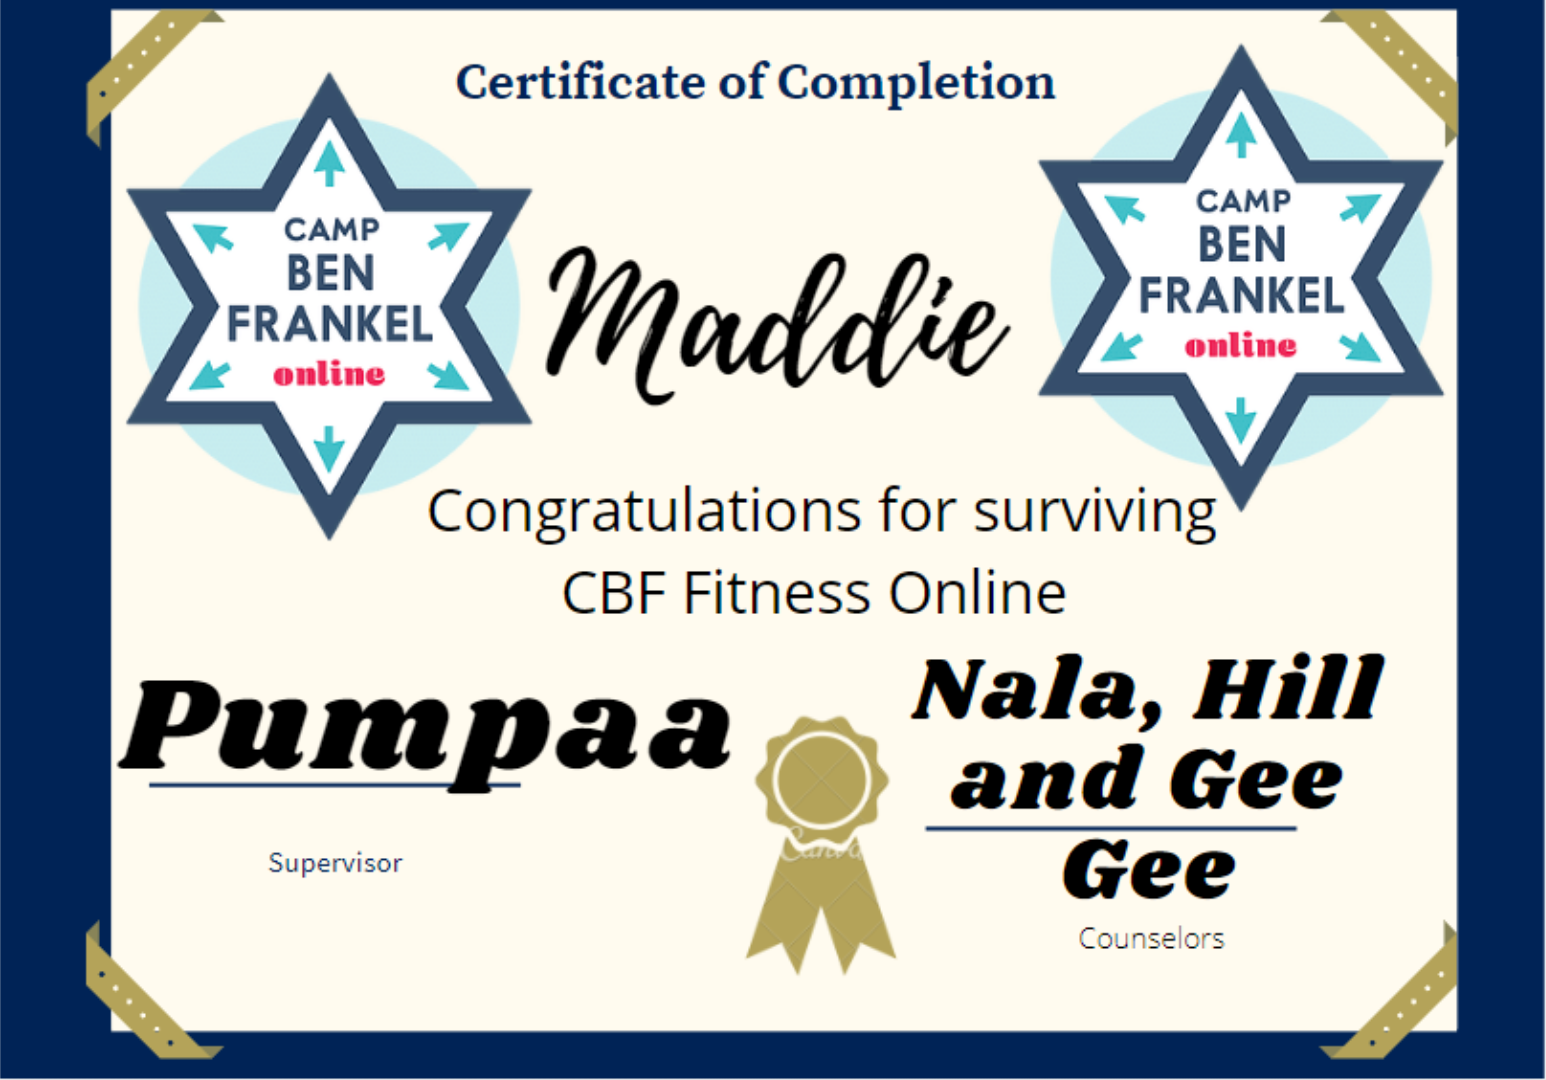 Maddie - Certificate of Completion